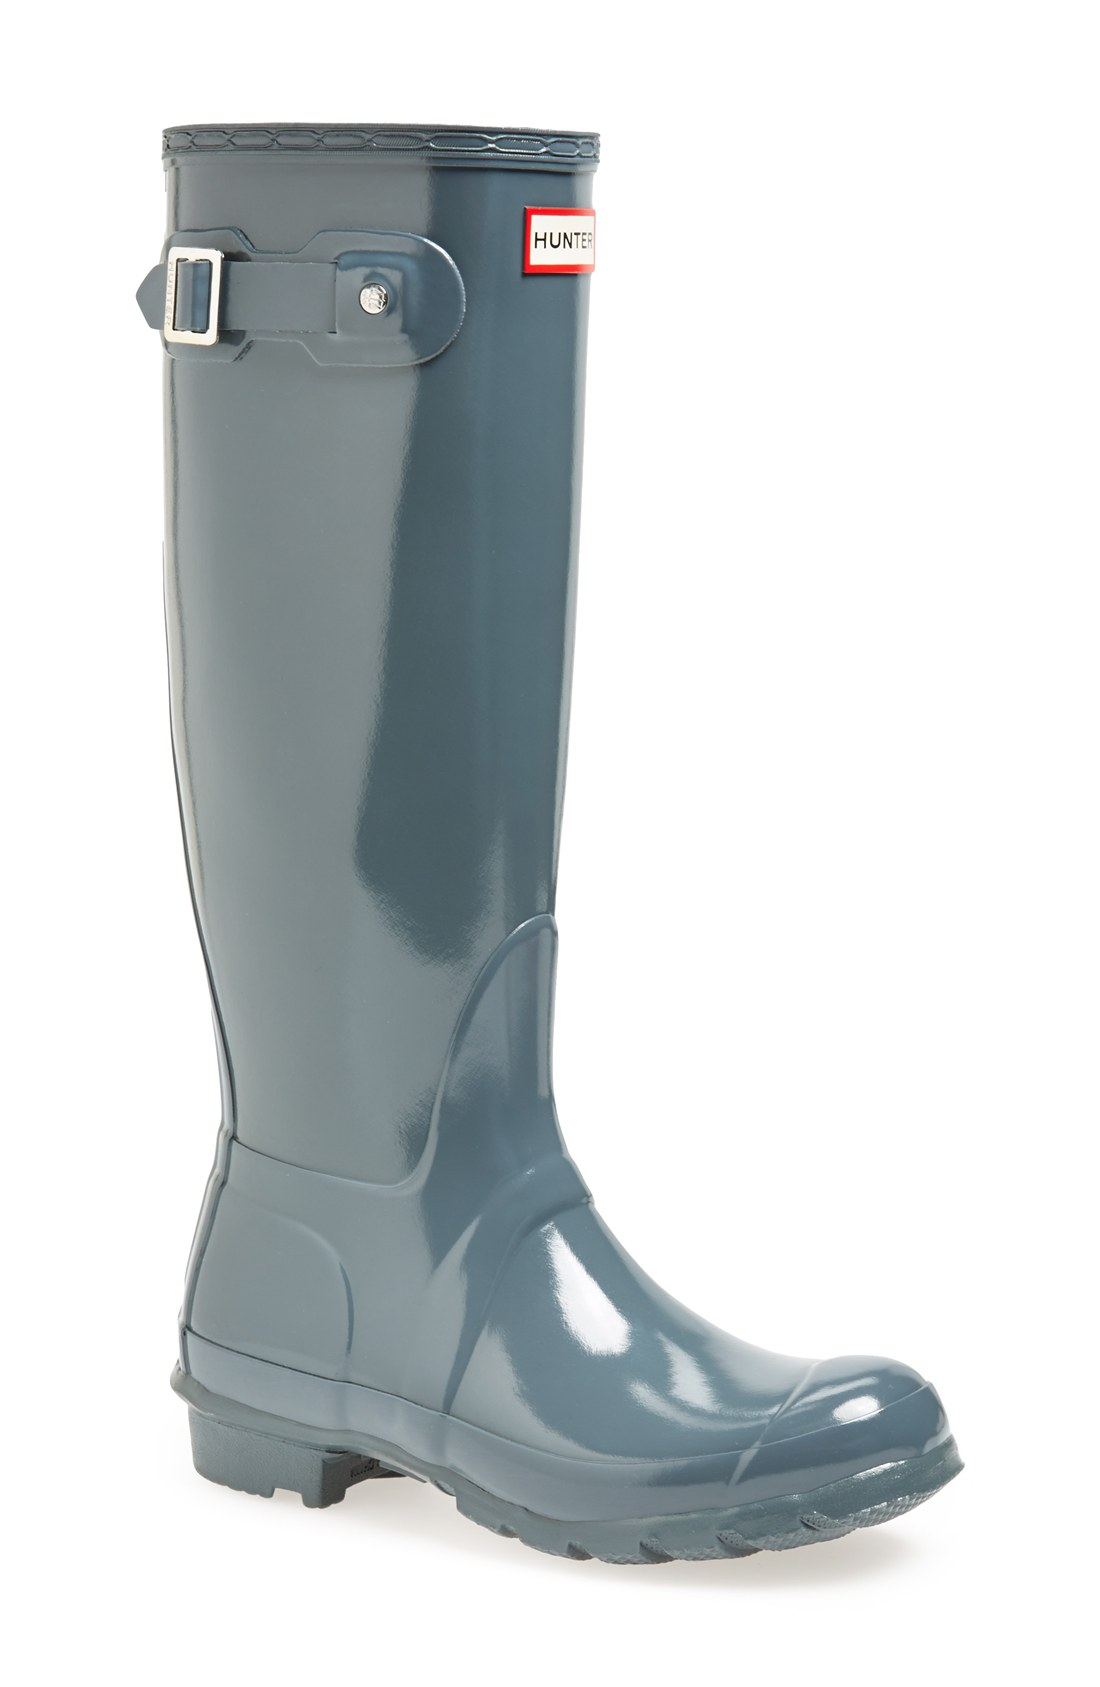 Winter Rain Boots SiBU92e4